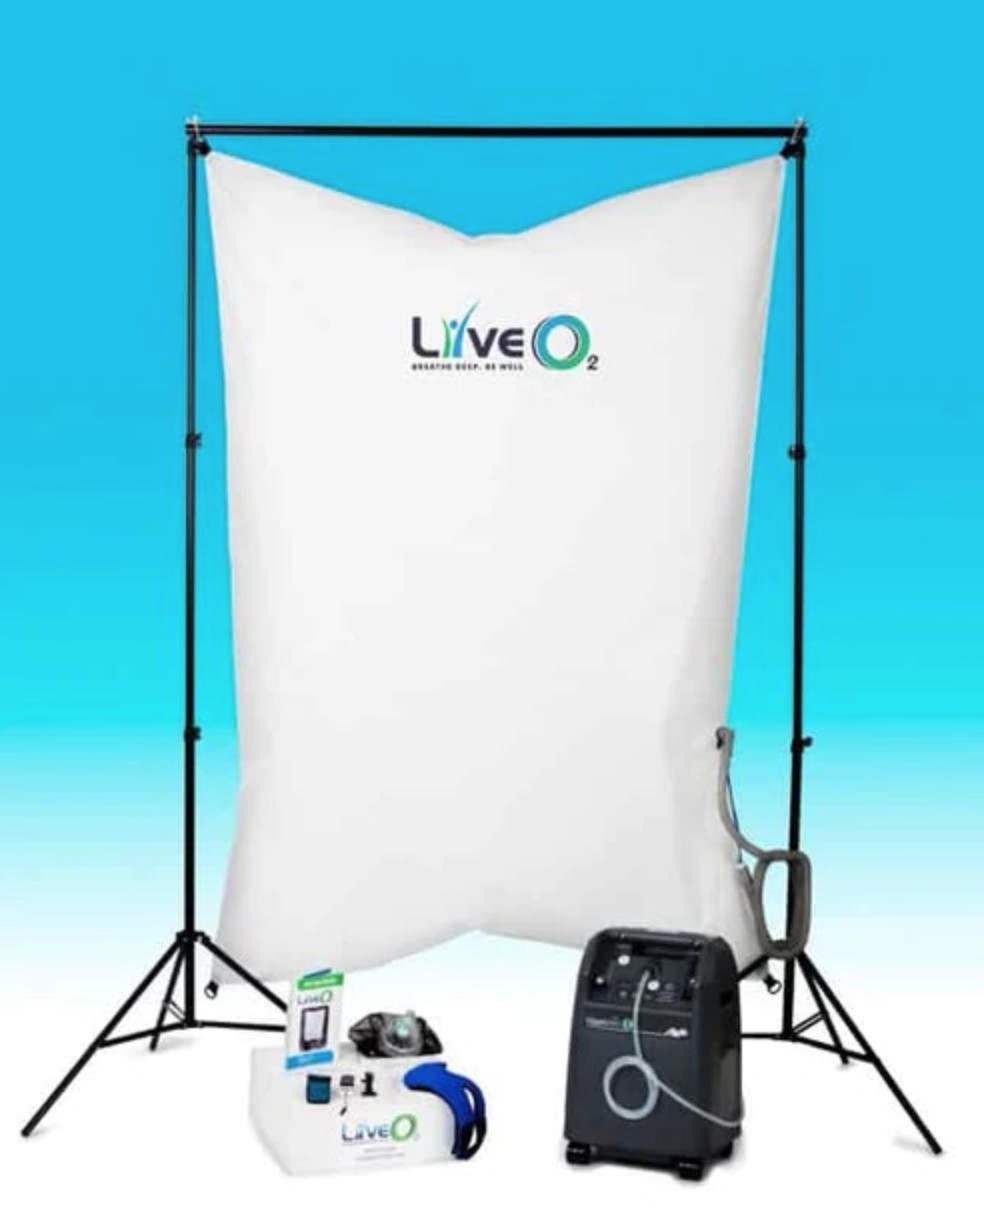 Here is a picture of the Adaptive Contrast Oxygenation System from LiveO2